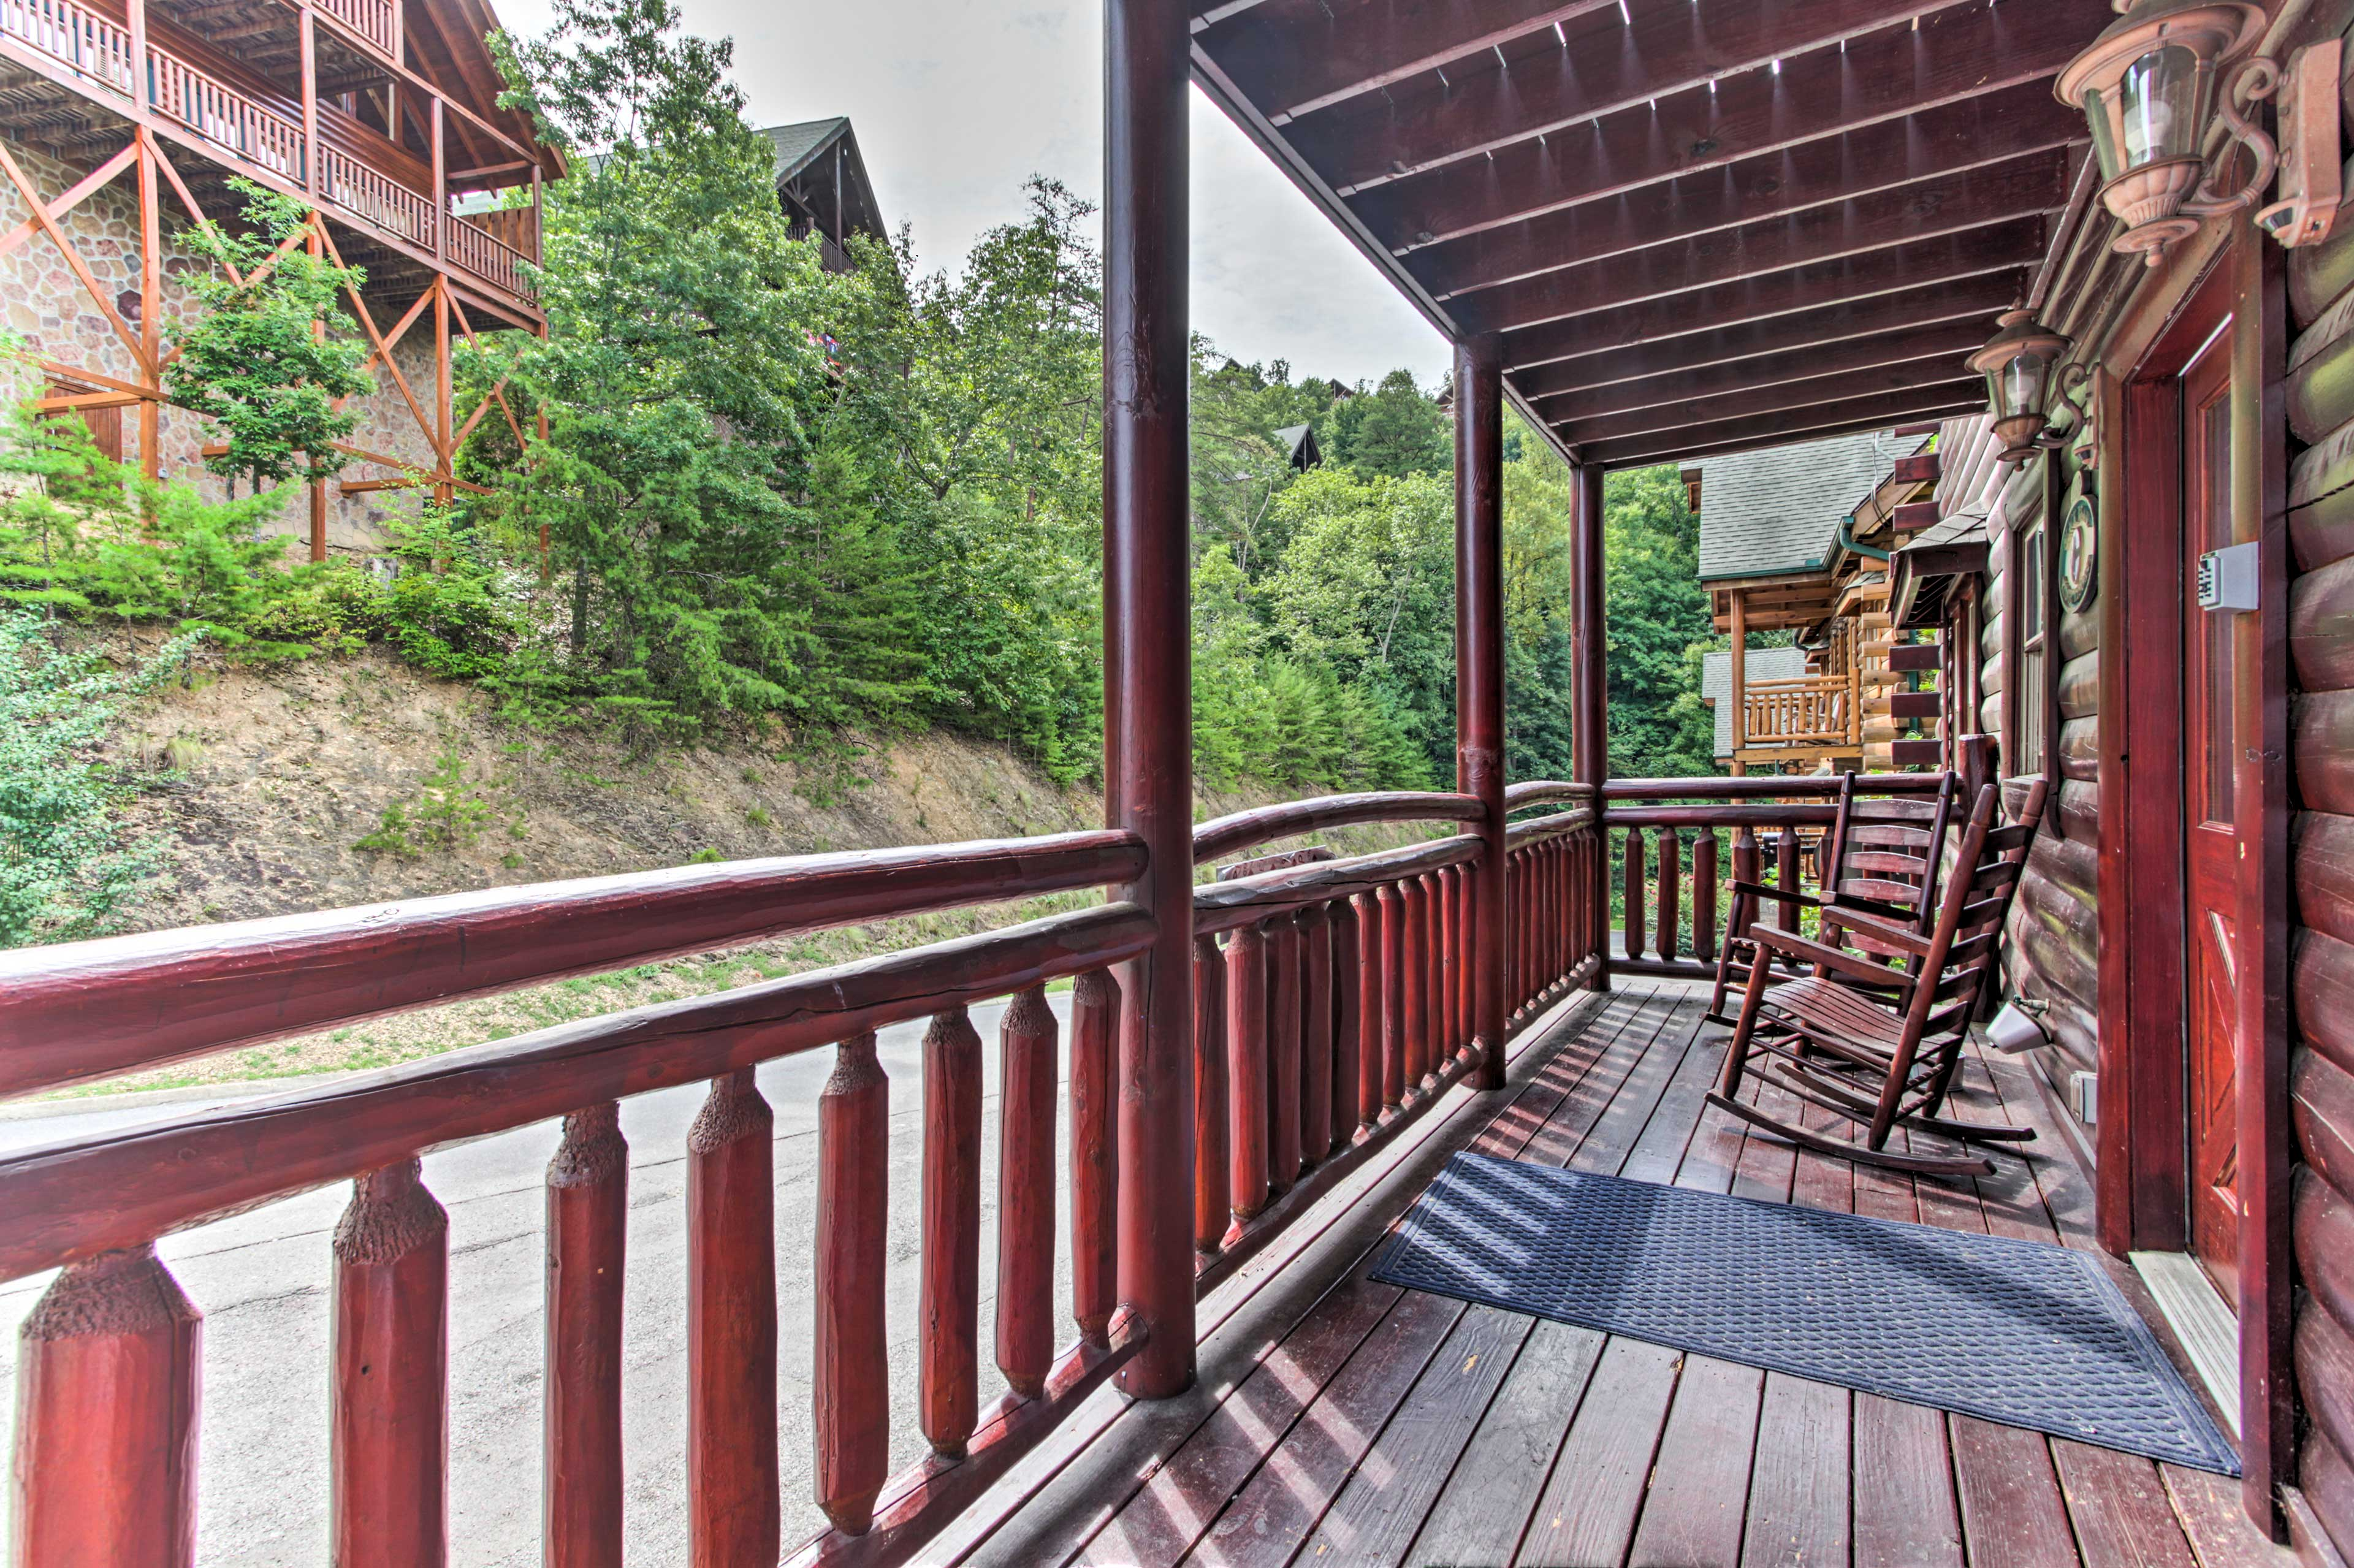 You even get the privacy of having your own deck!